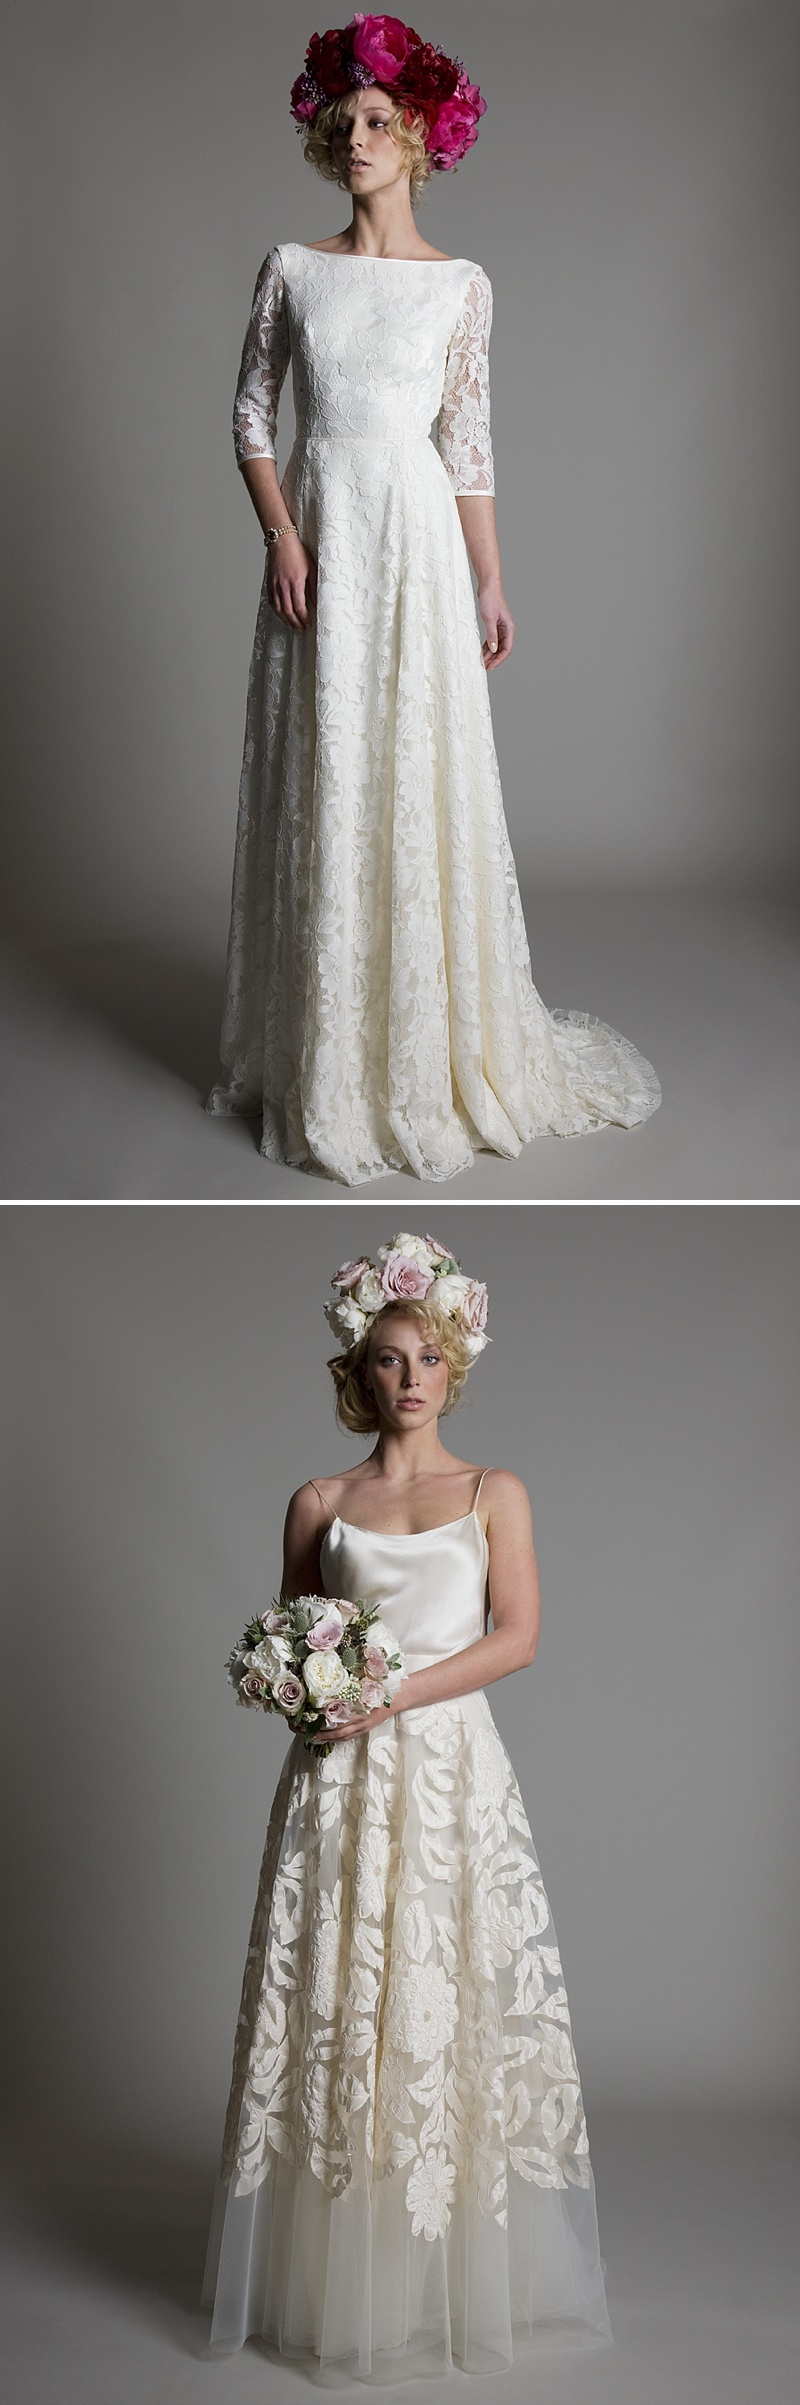 Beautiful Vintage and Couture wedding dresses and gowns by Kate Halfpenny London